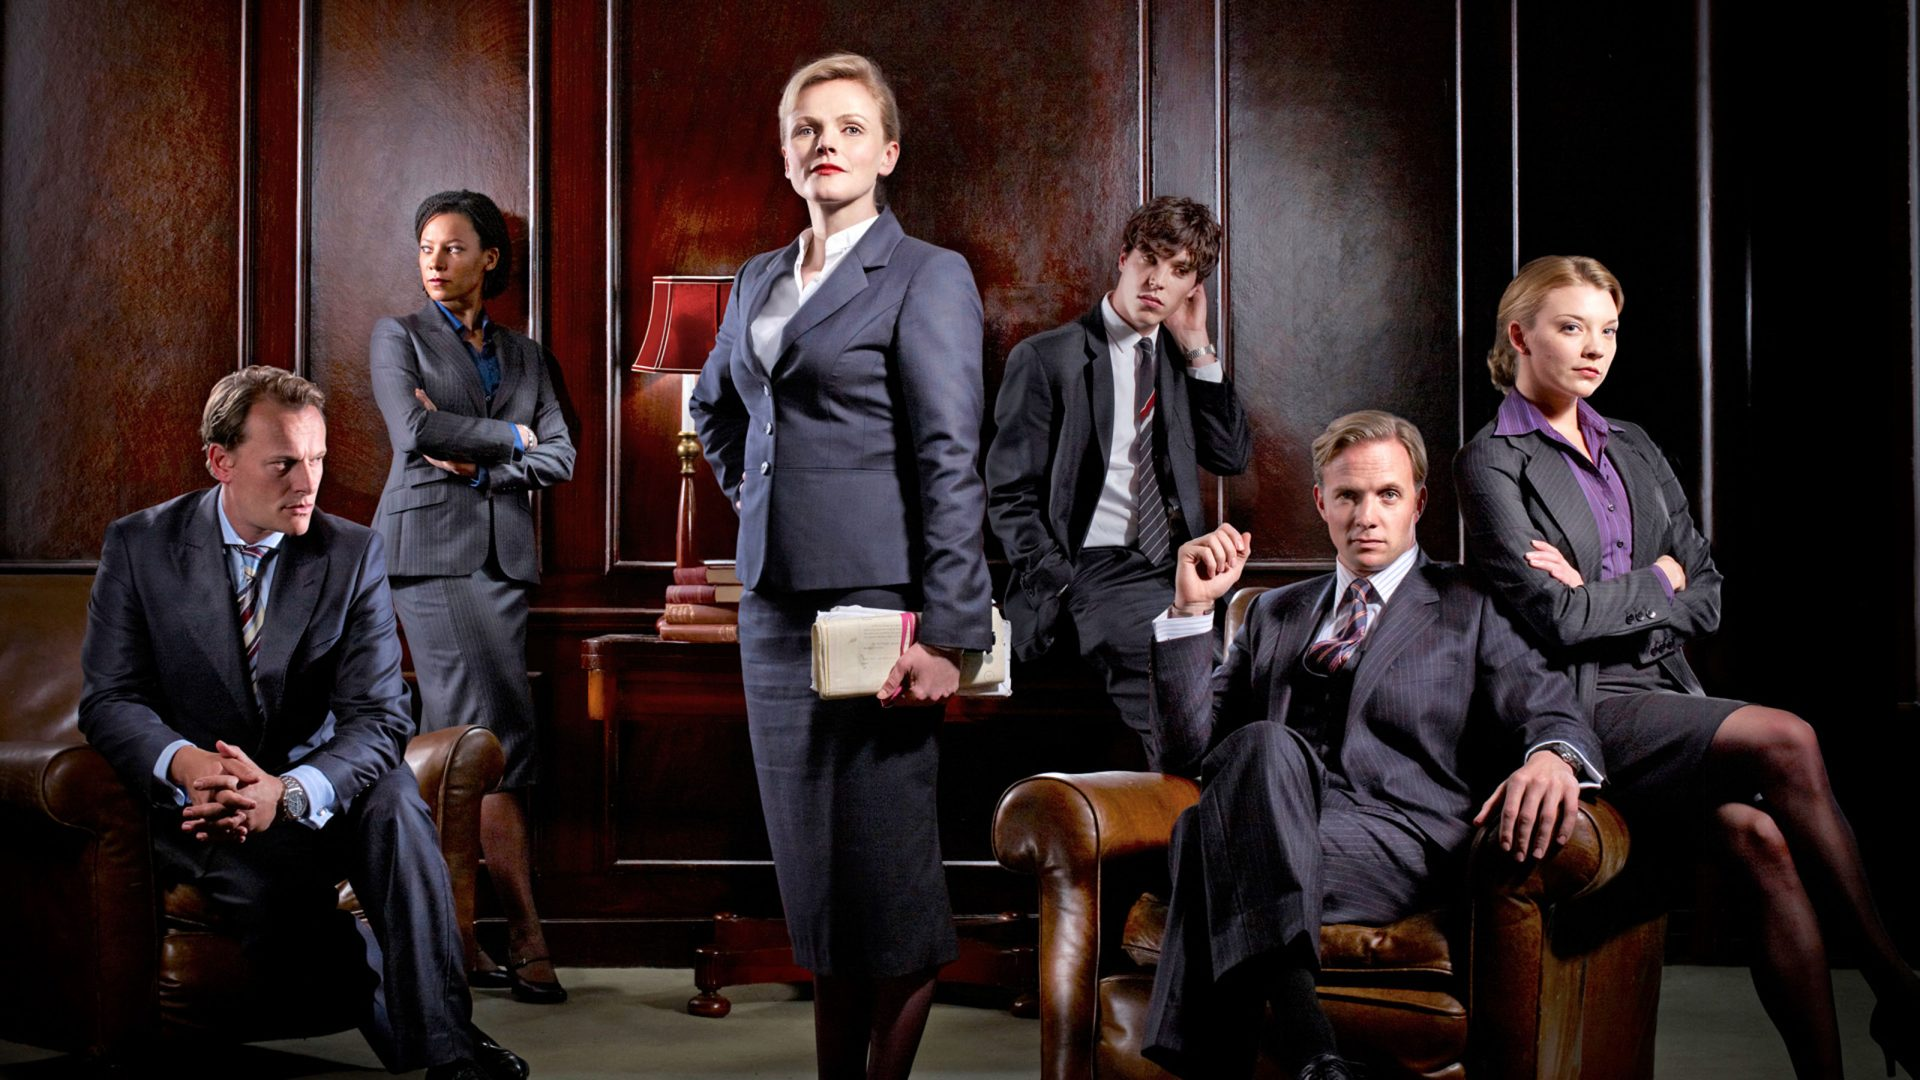 The Best TV shows That Every Law Student Should Watch